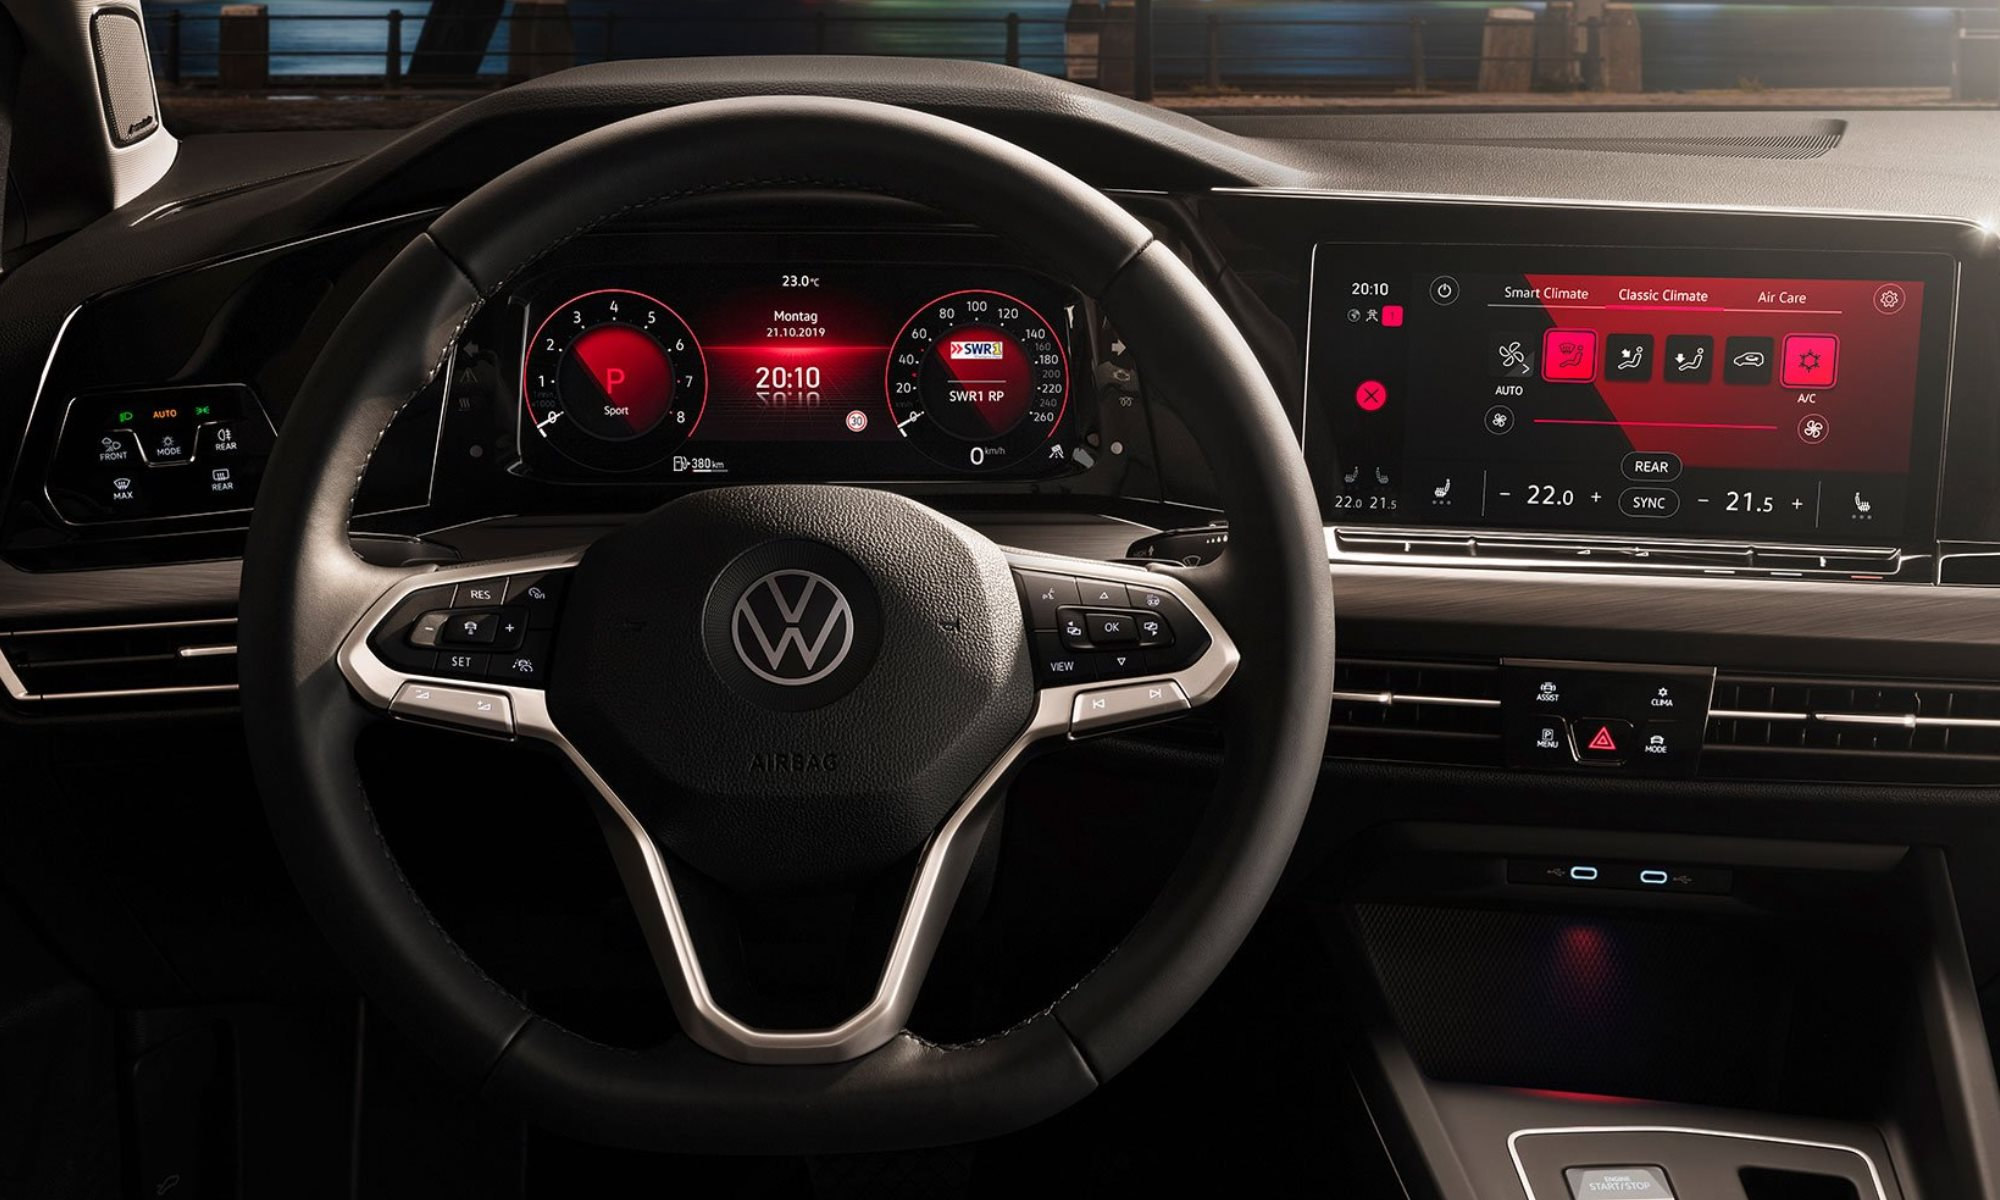 VW Golf 8 family cockpit